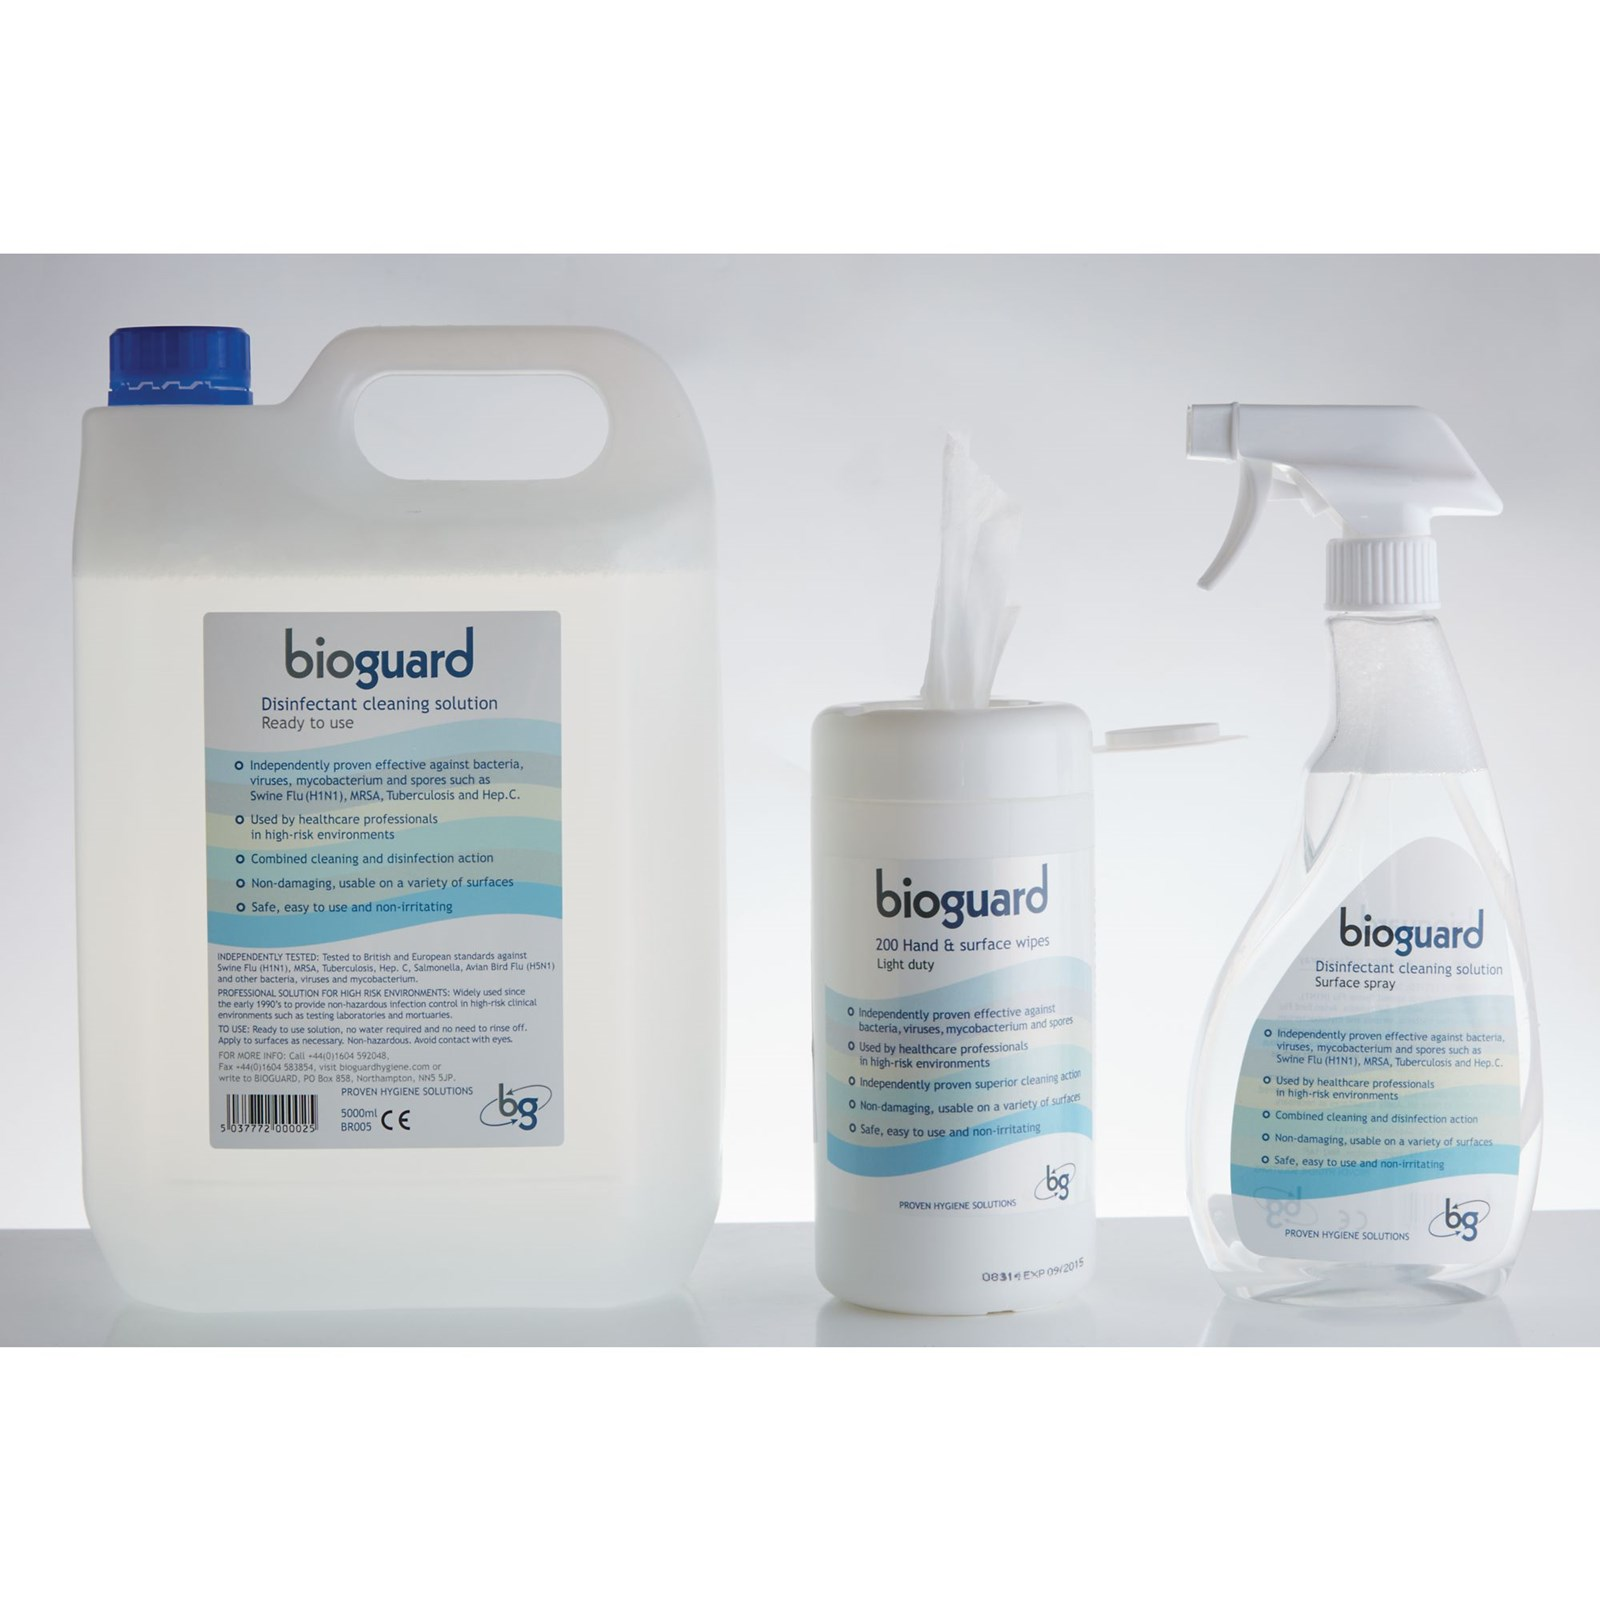 Bioguard Disinfectant Cleaner - Wipes